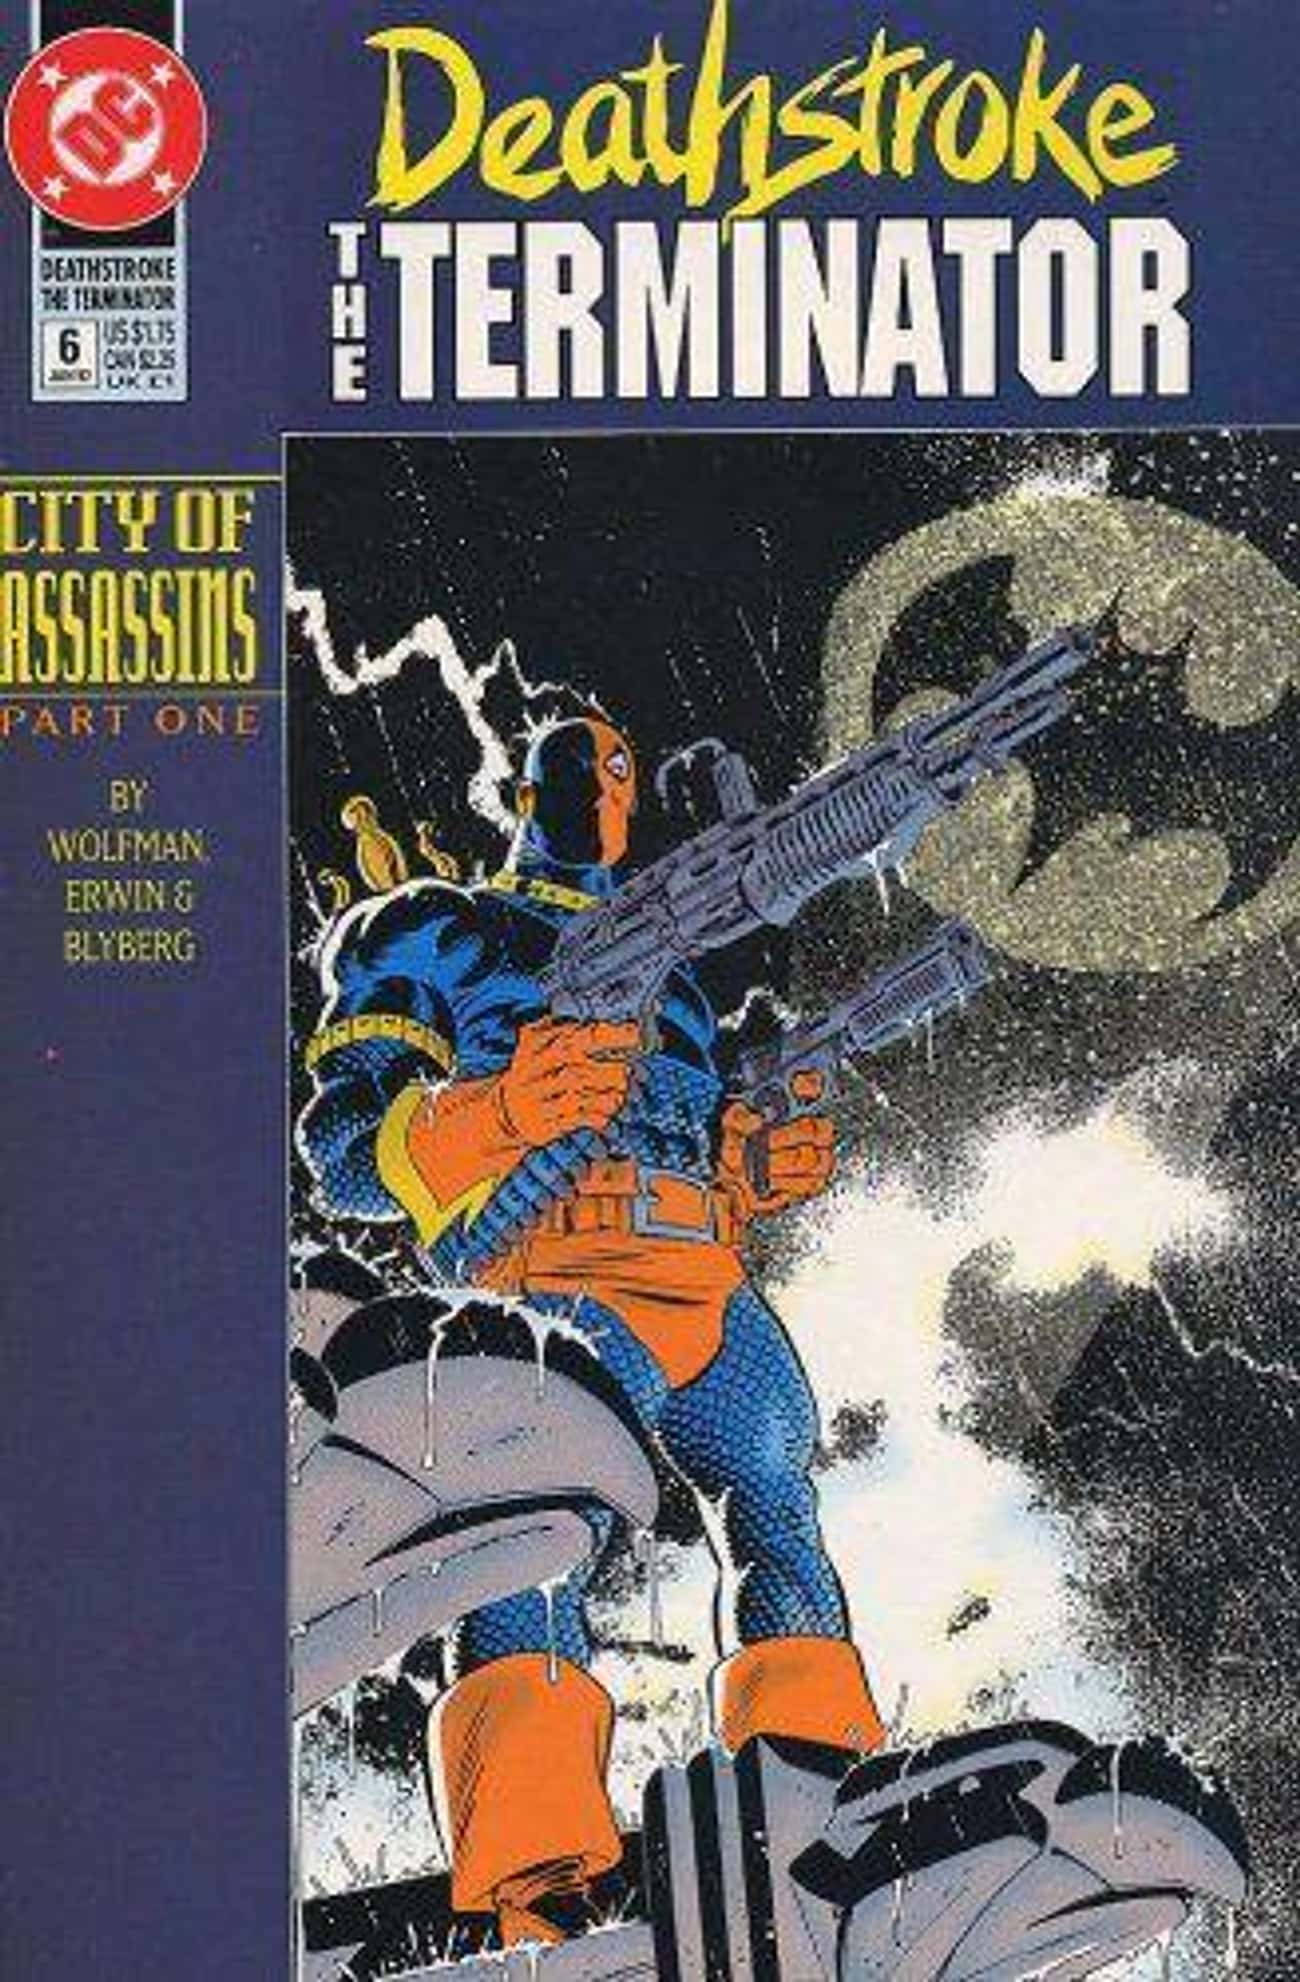 City of Assassins is listed (or ranked) 3 on the list The Best Deathstroke Storylines To Get To Know Slade Wilson